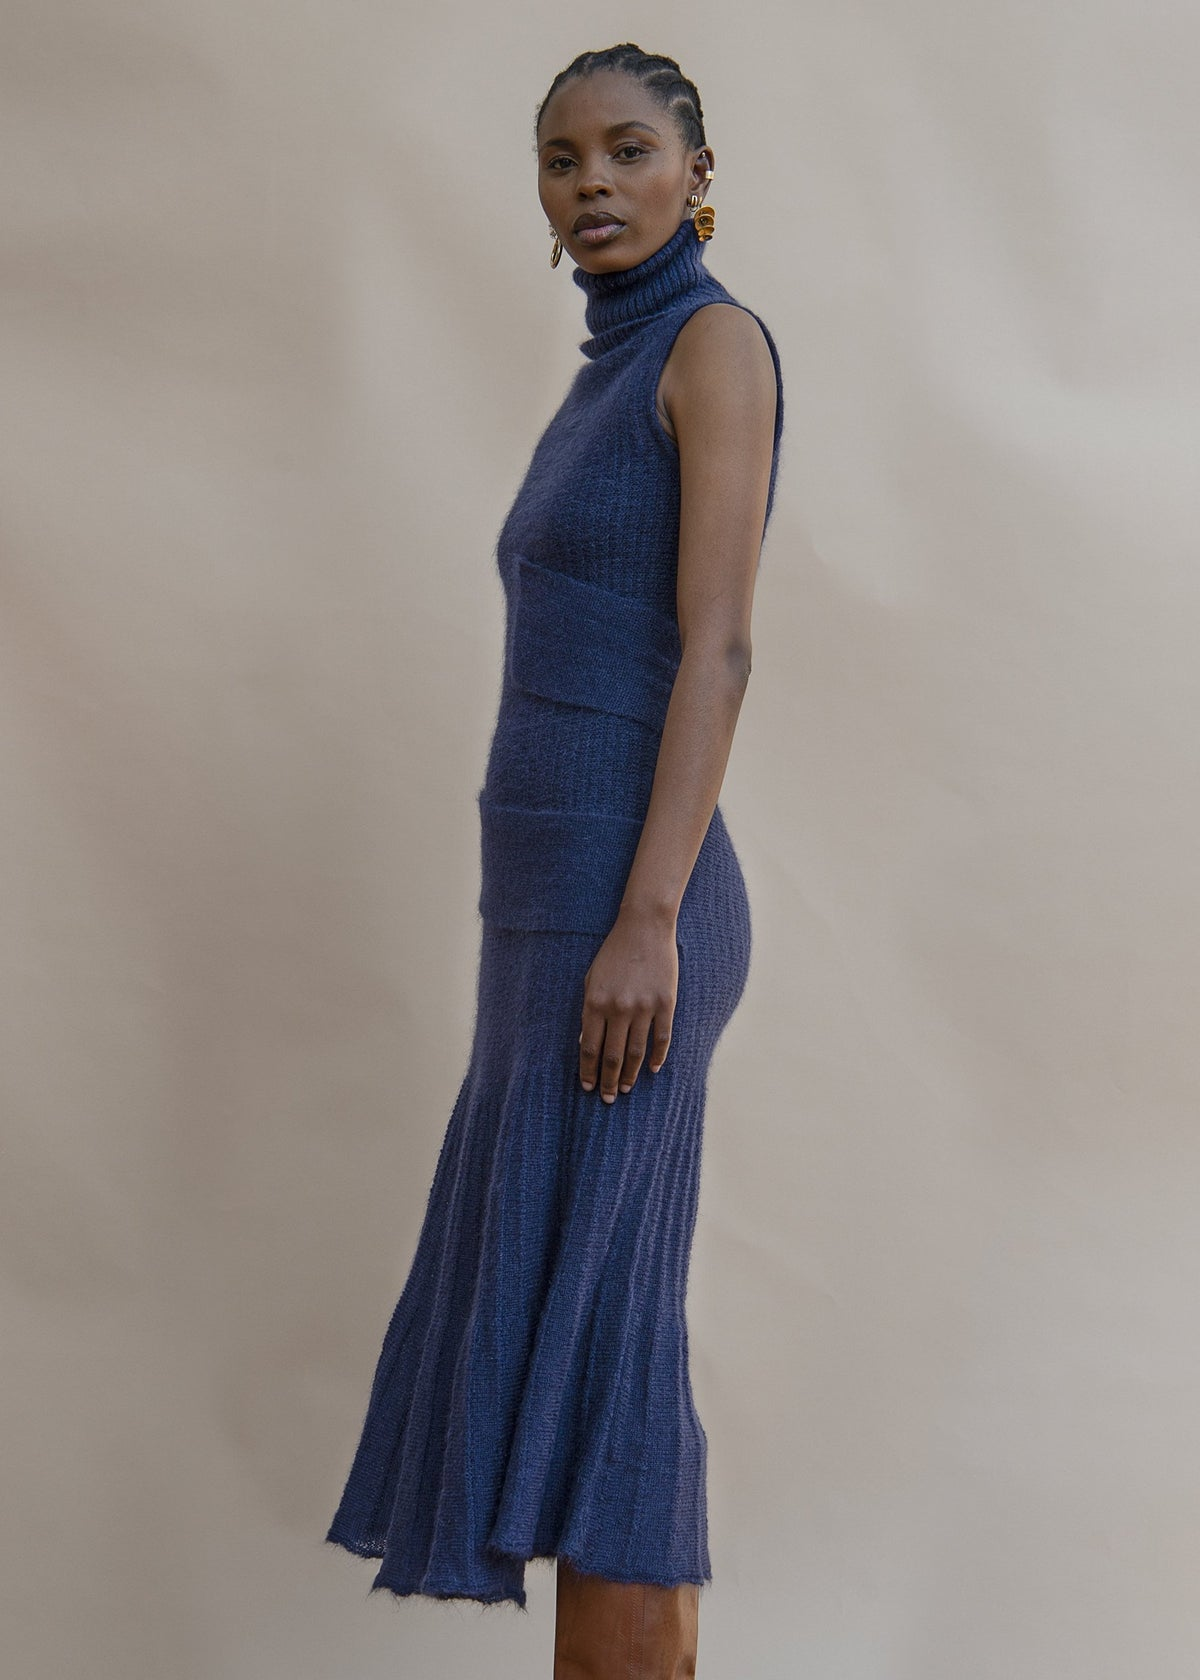 MmusoMaxwell knitted spiral dress